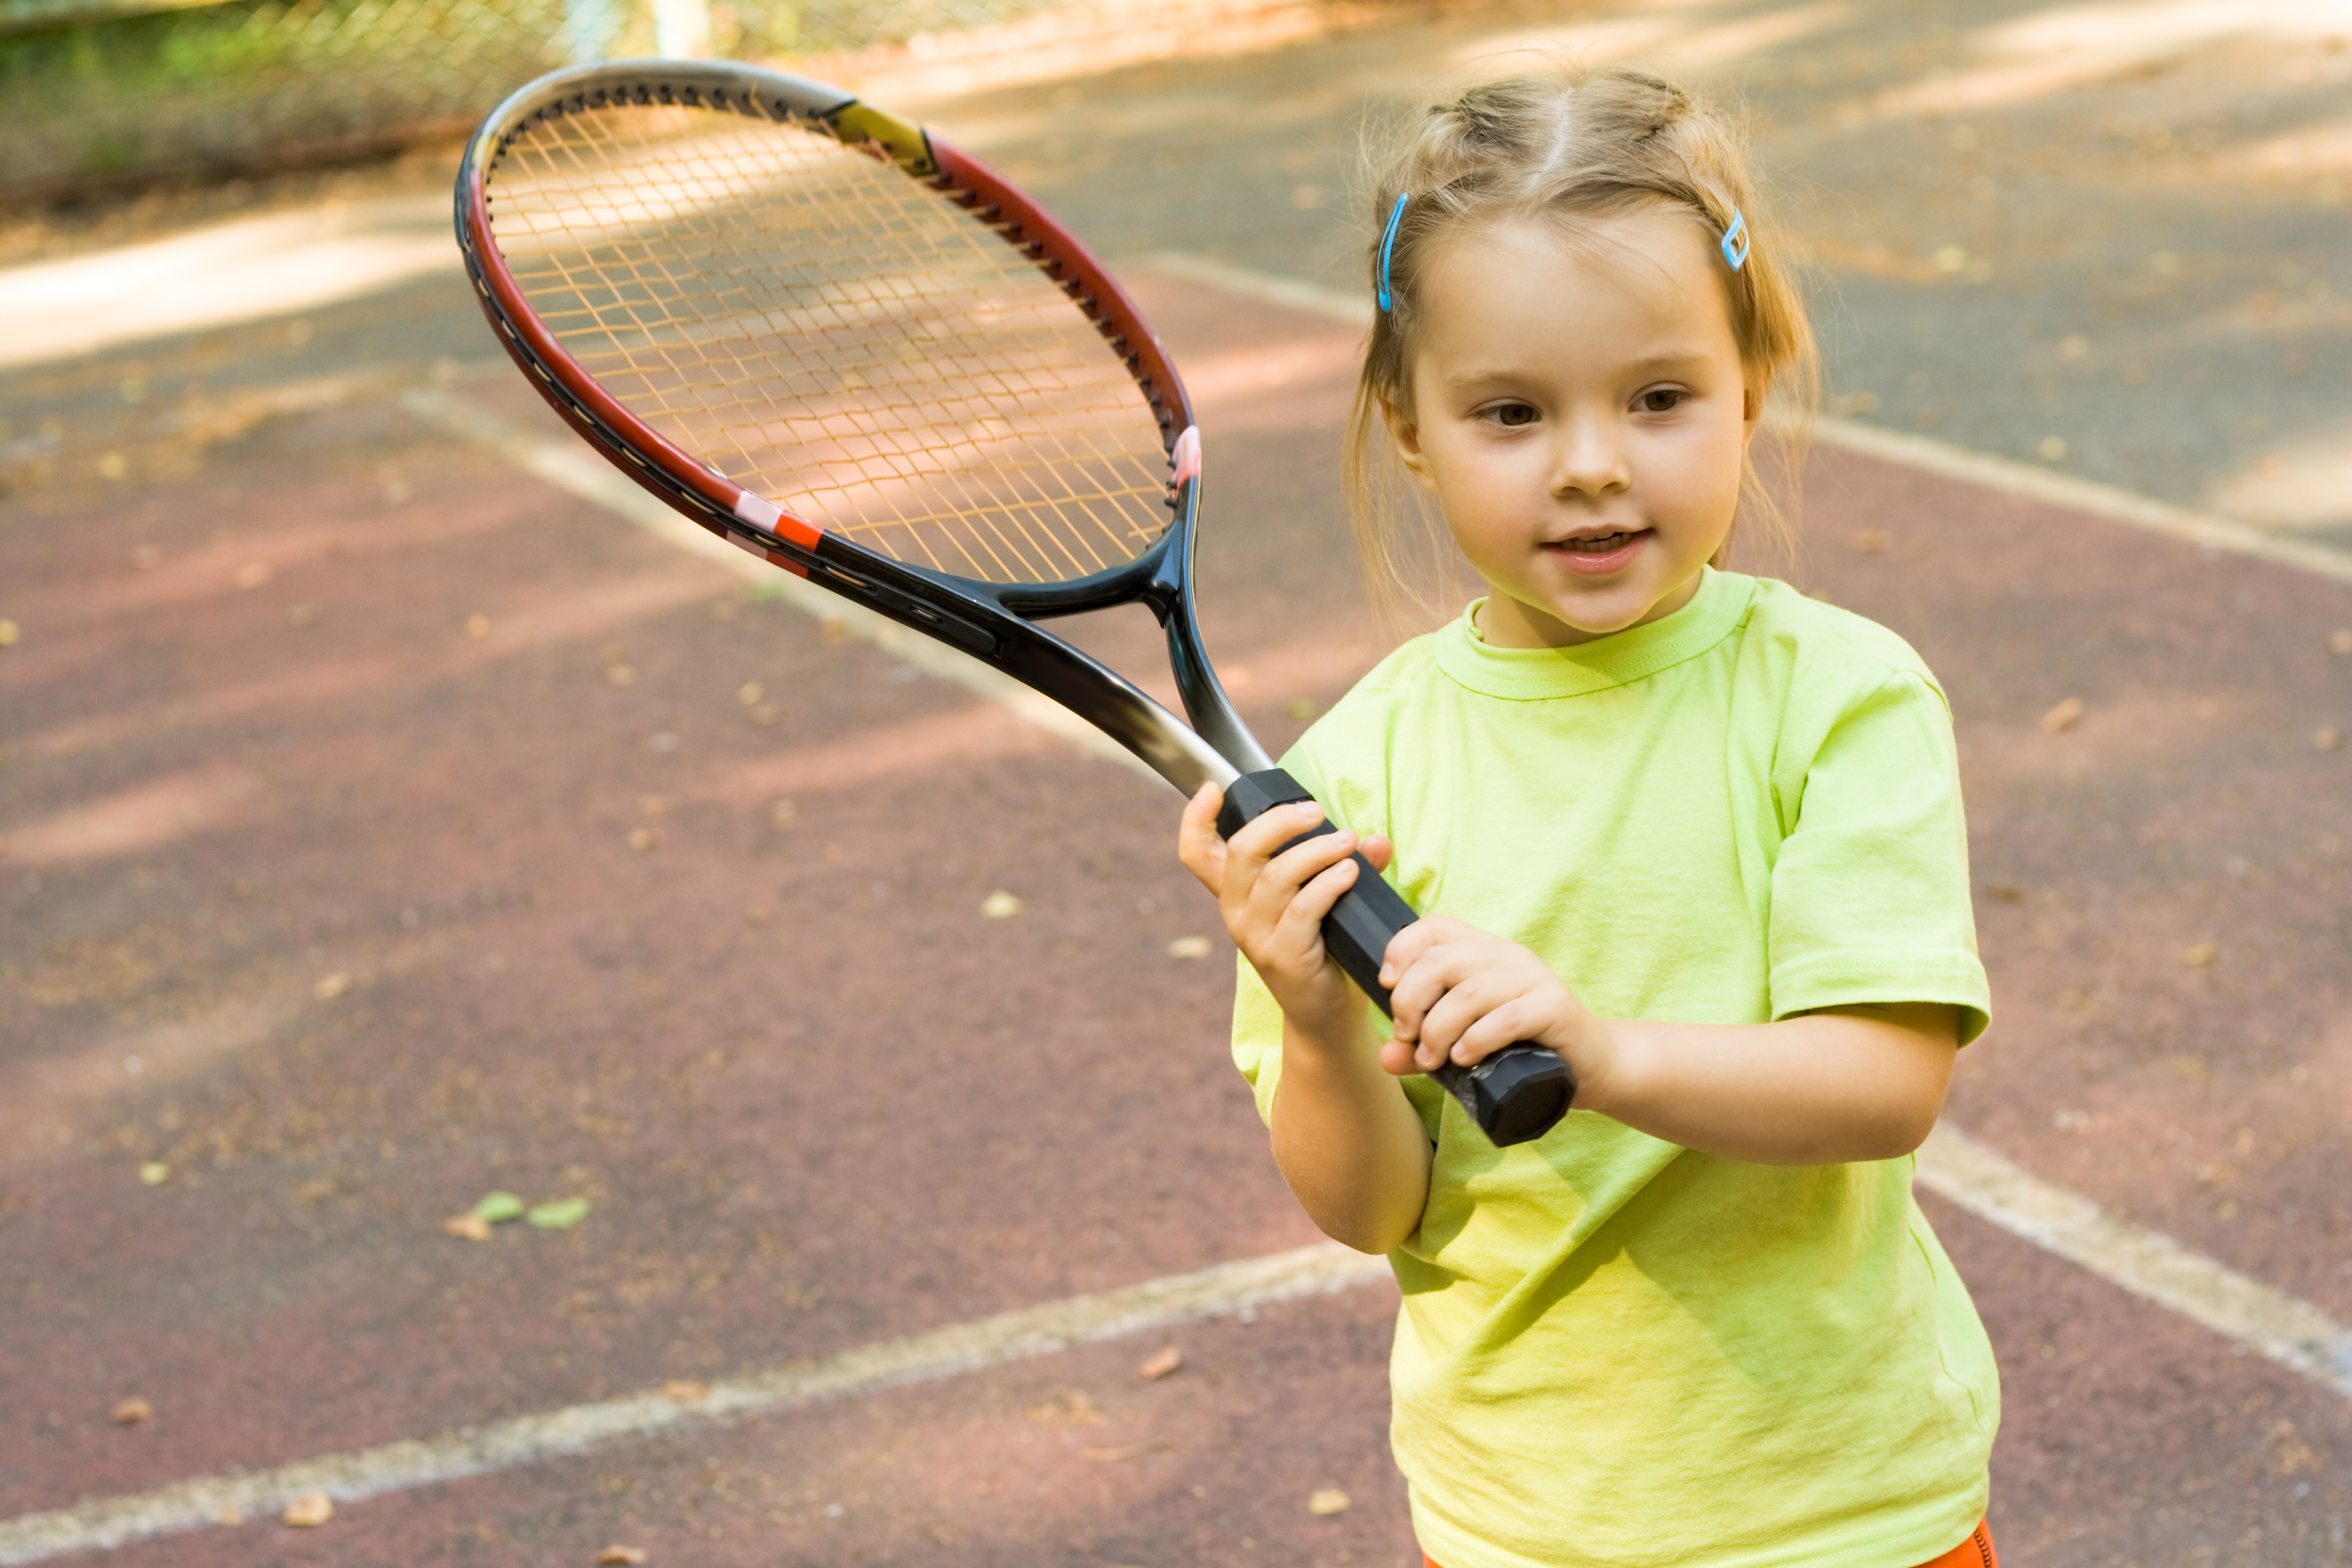 tennis-best-activity-for-kids